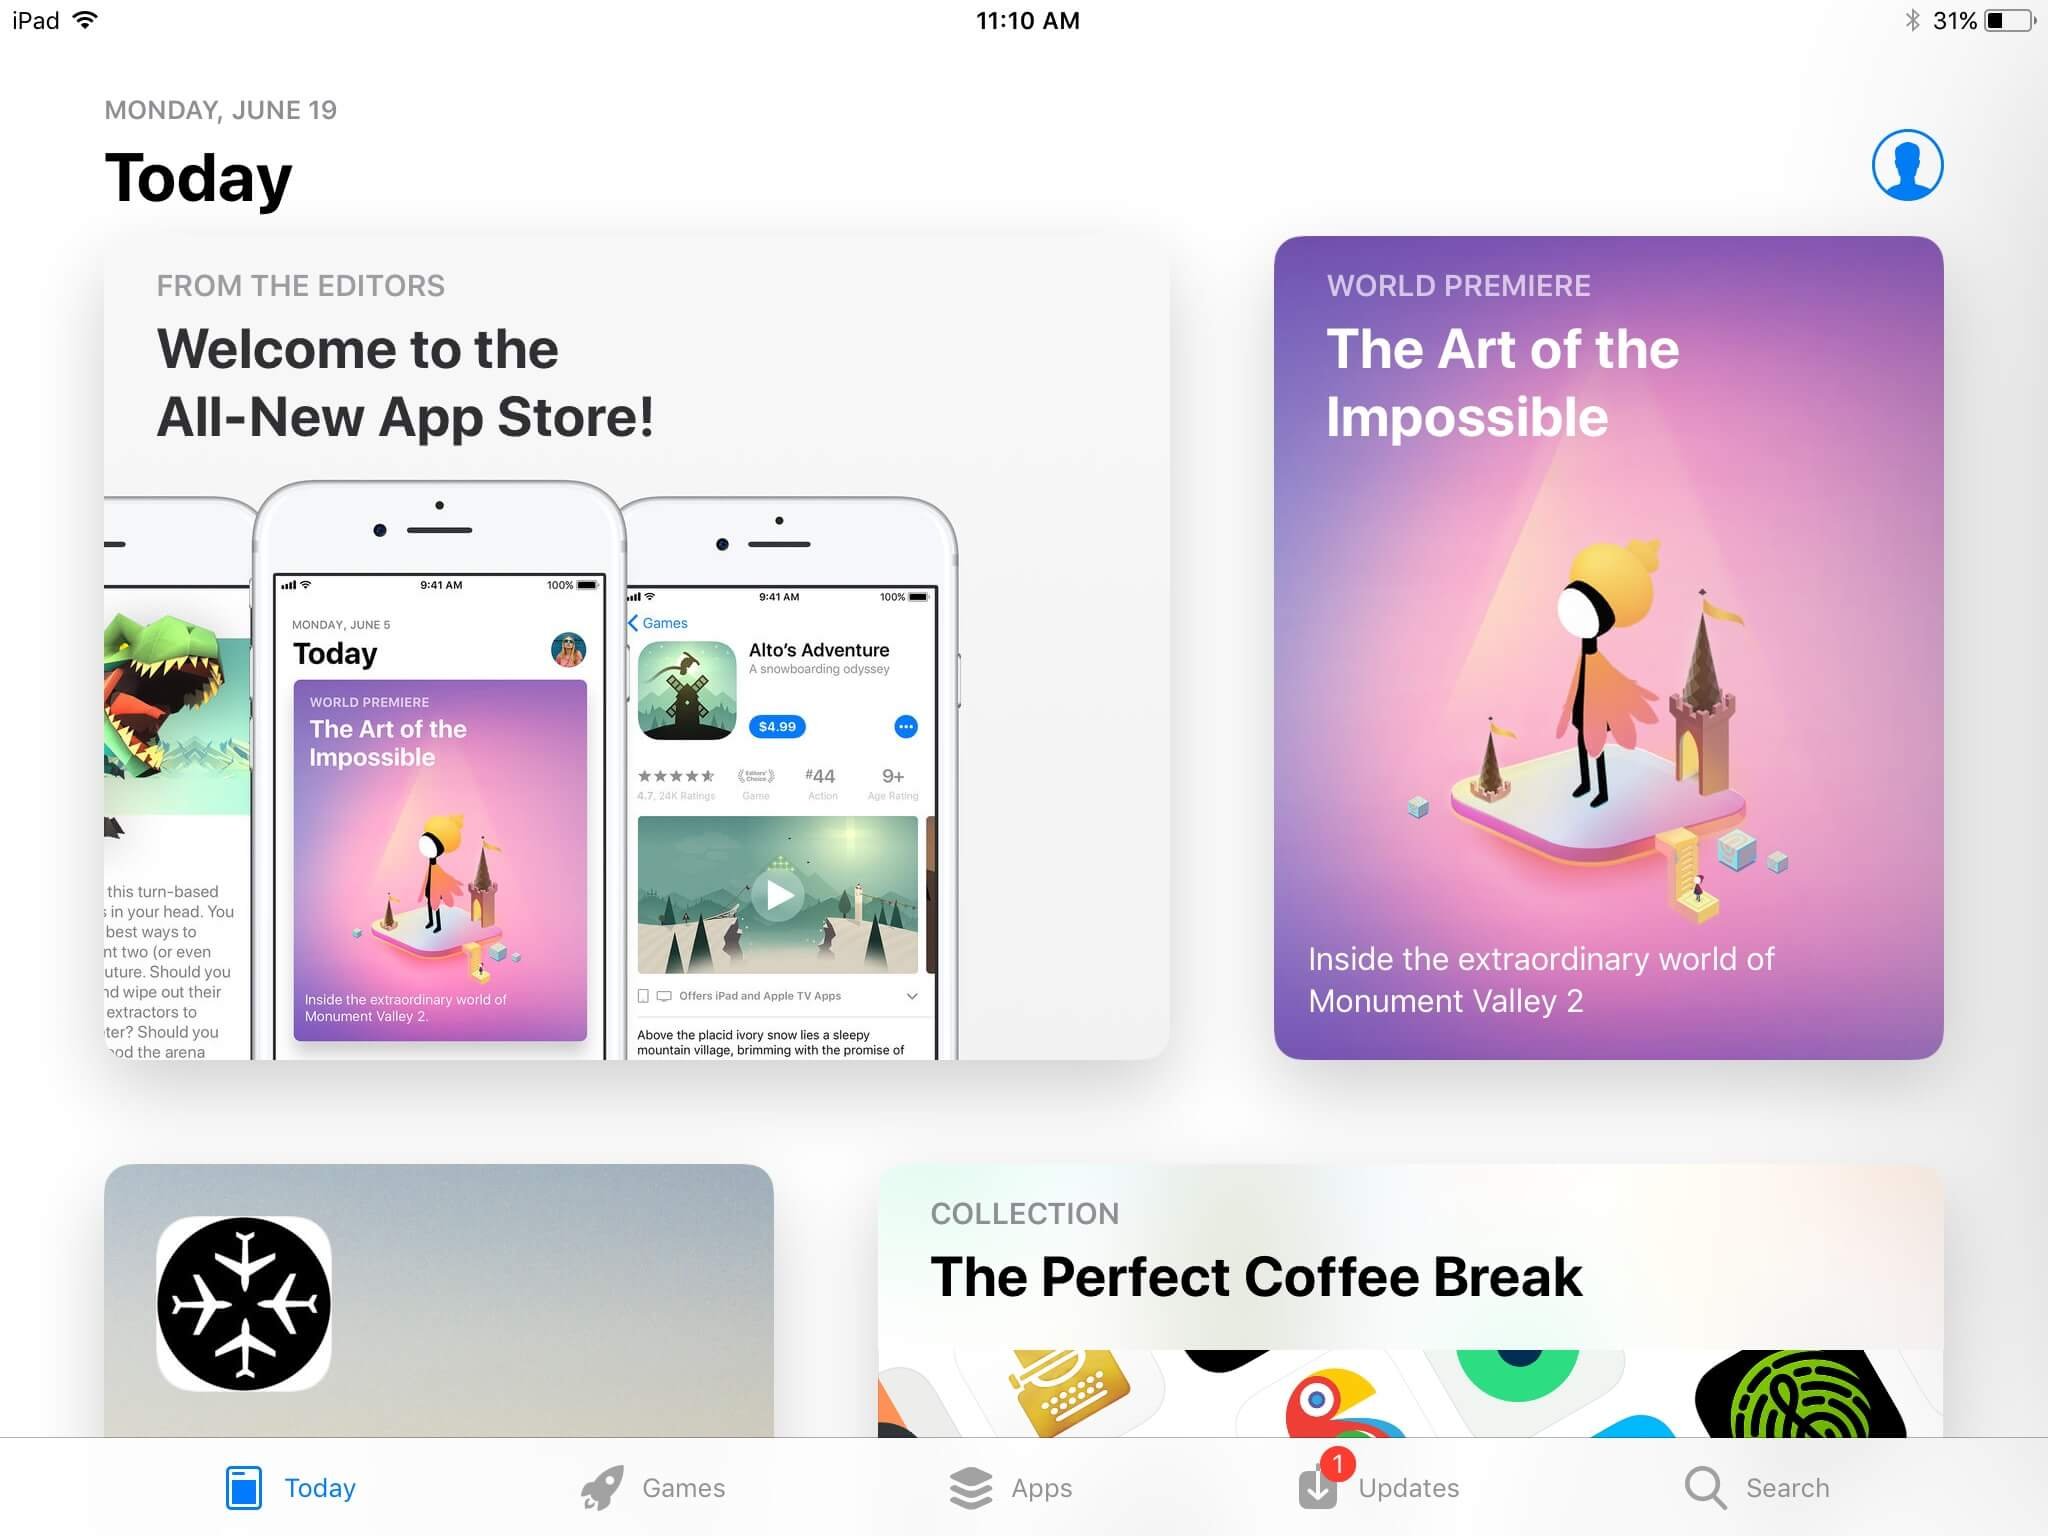 App Store iOS 11 for iPad